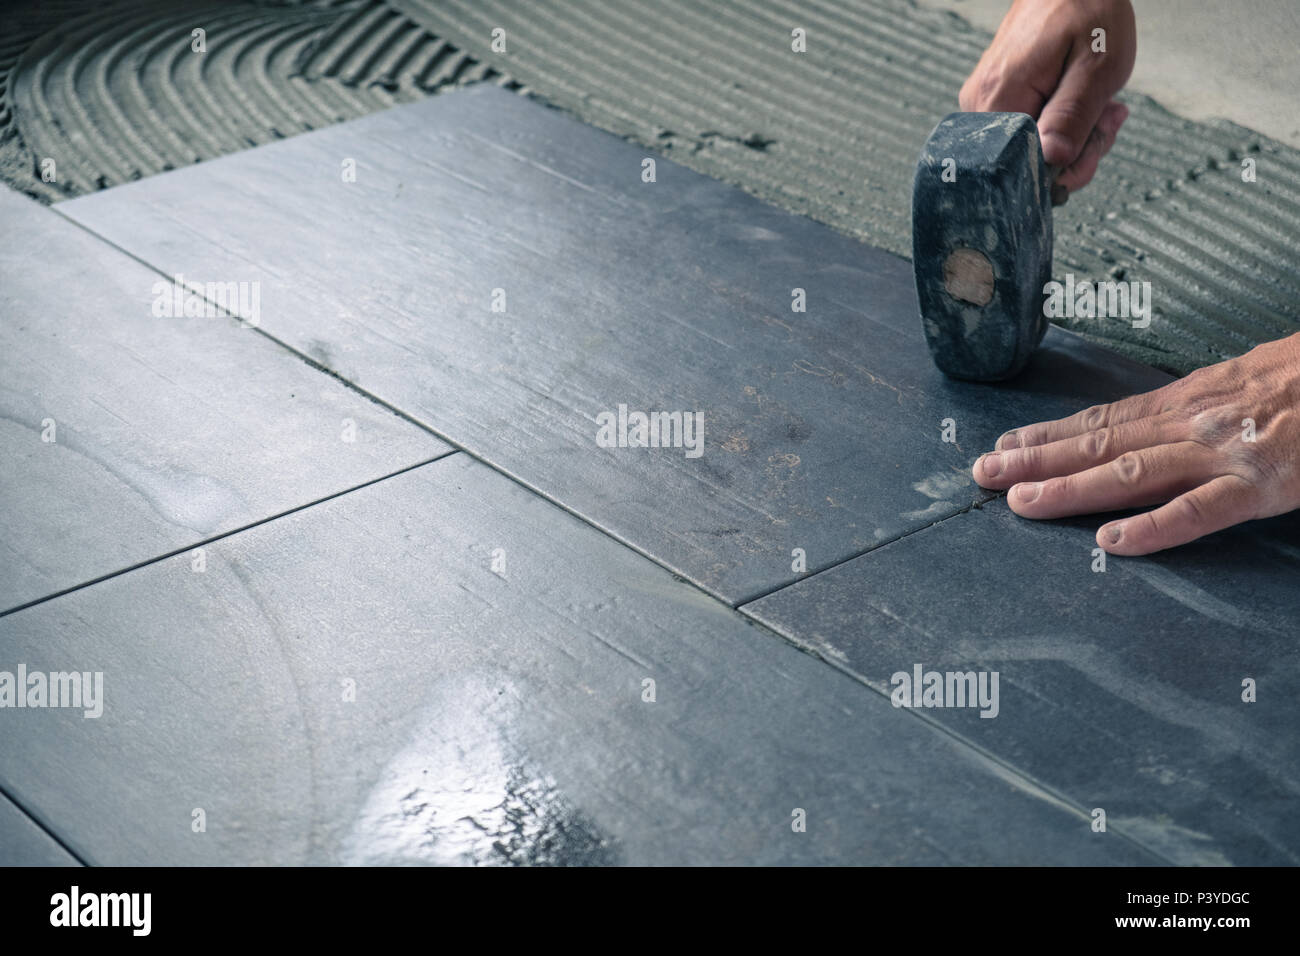 Rubber Flooring Stock Photos & Rubber Flooring Stock Images - Alamy